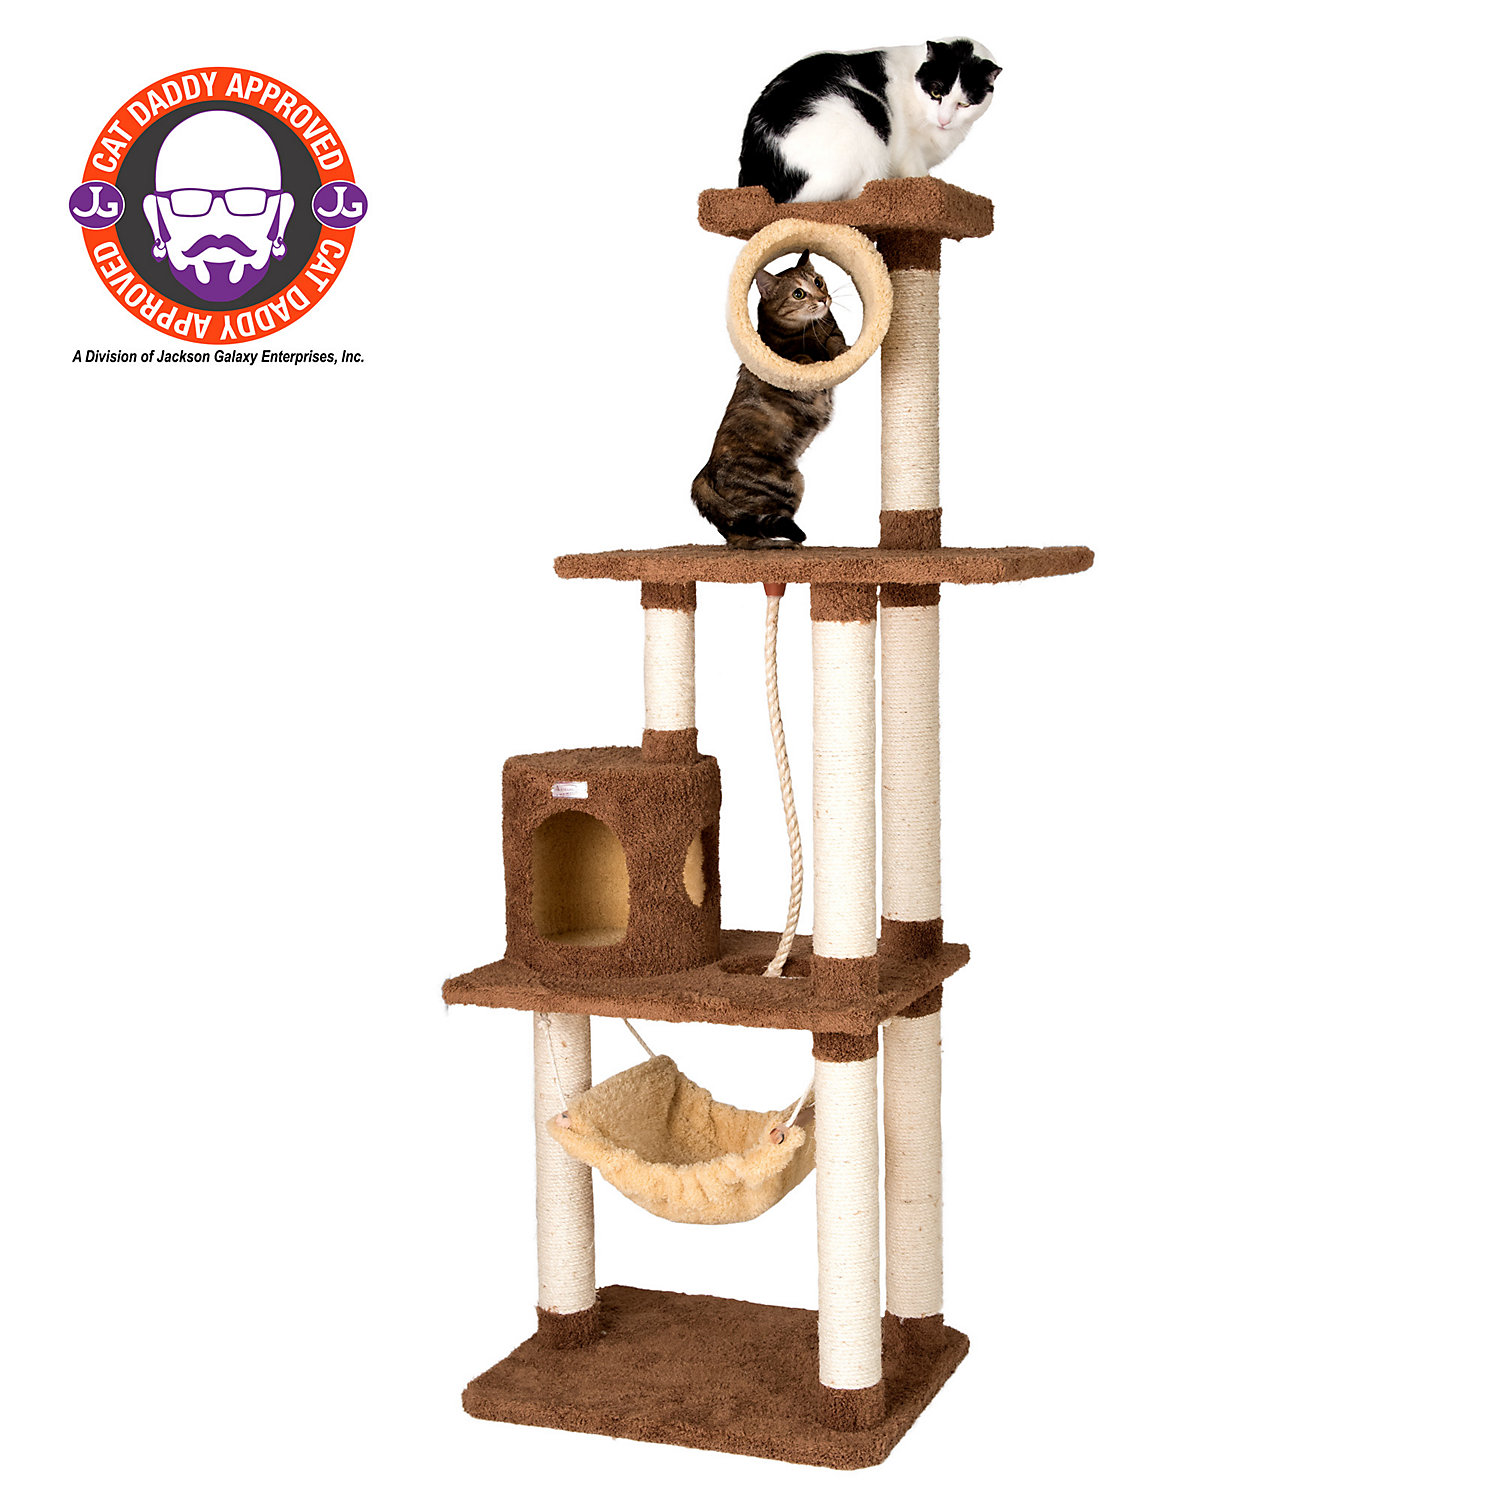 Armarkat Premium Cat Tree Model X7001 Tan